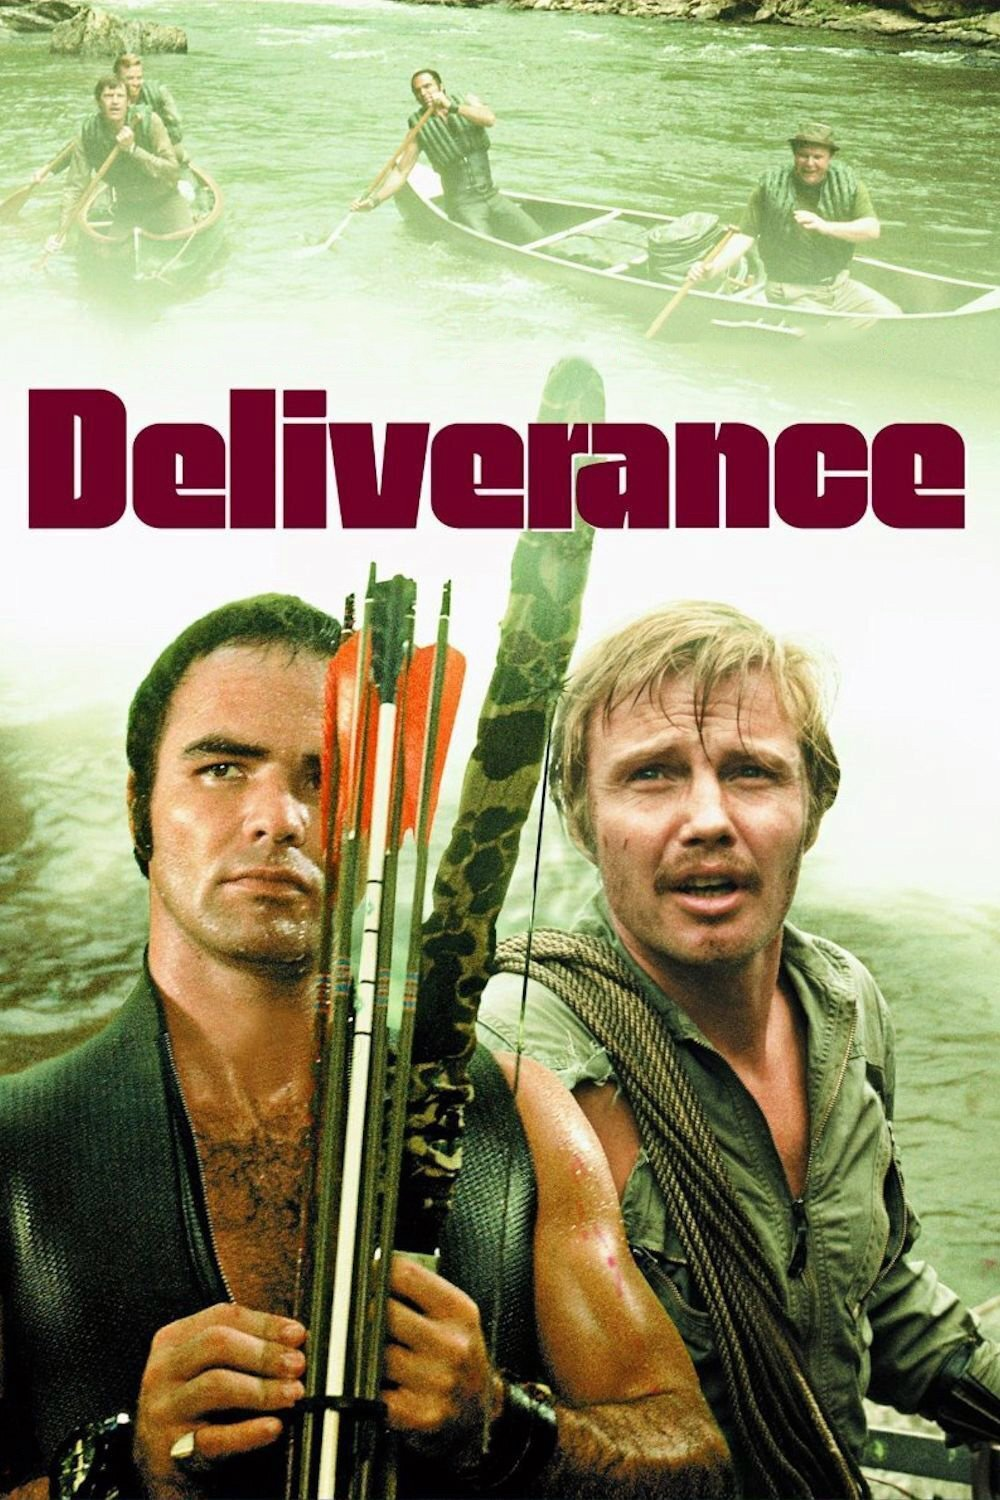 Deliverance (1972) - Directed by: John BoormanStarring: Jon Voight, Burt Reynolds, Ned Beatty, Ronny CoxRated: R for Disturbing Content, Violence, and Some LanguageRunning Time: 1h 48mTMM Score: 5 StarsSTRENGTHS: Atmosphere, Performances, ClassicWEAKNESSES: Needs a Good Restoration